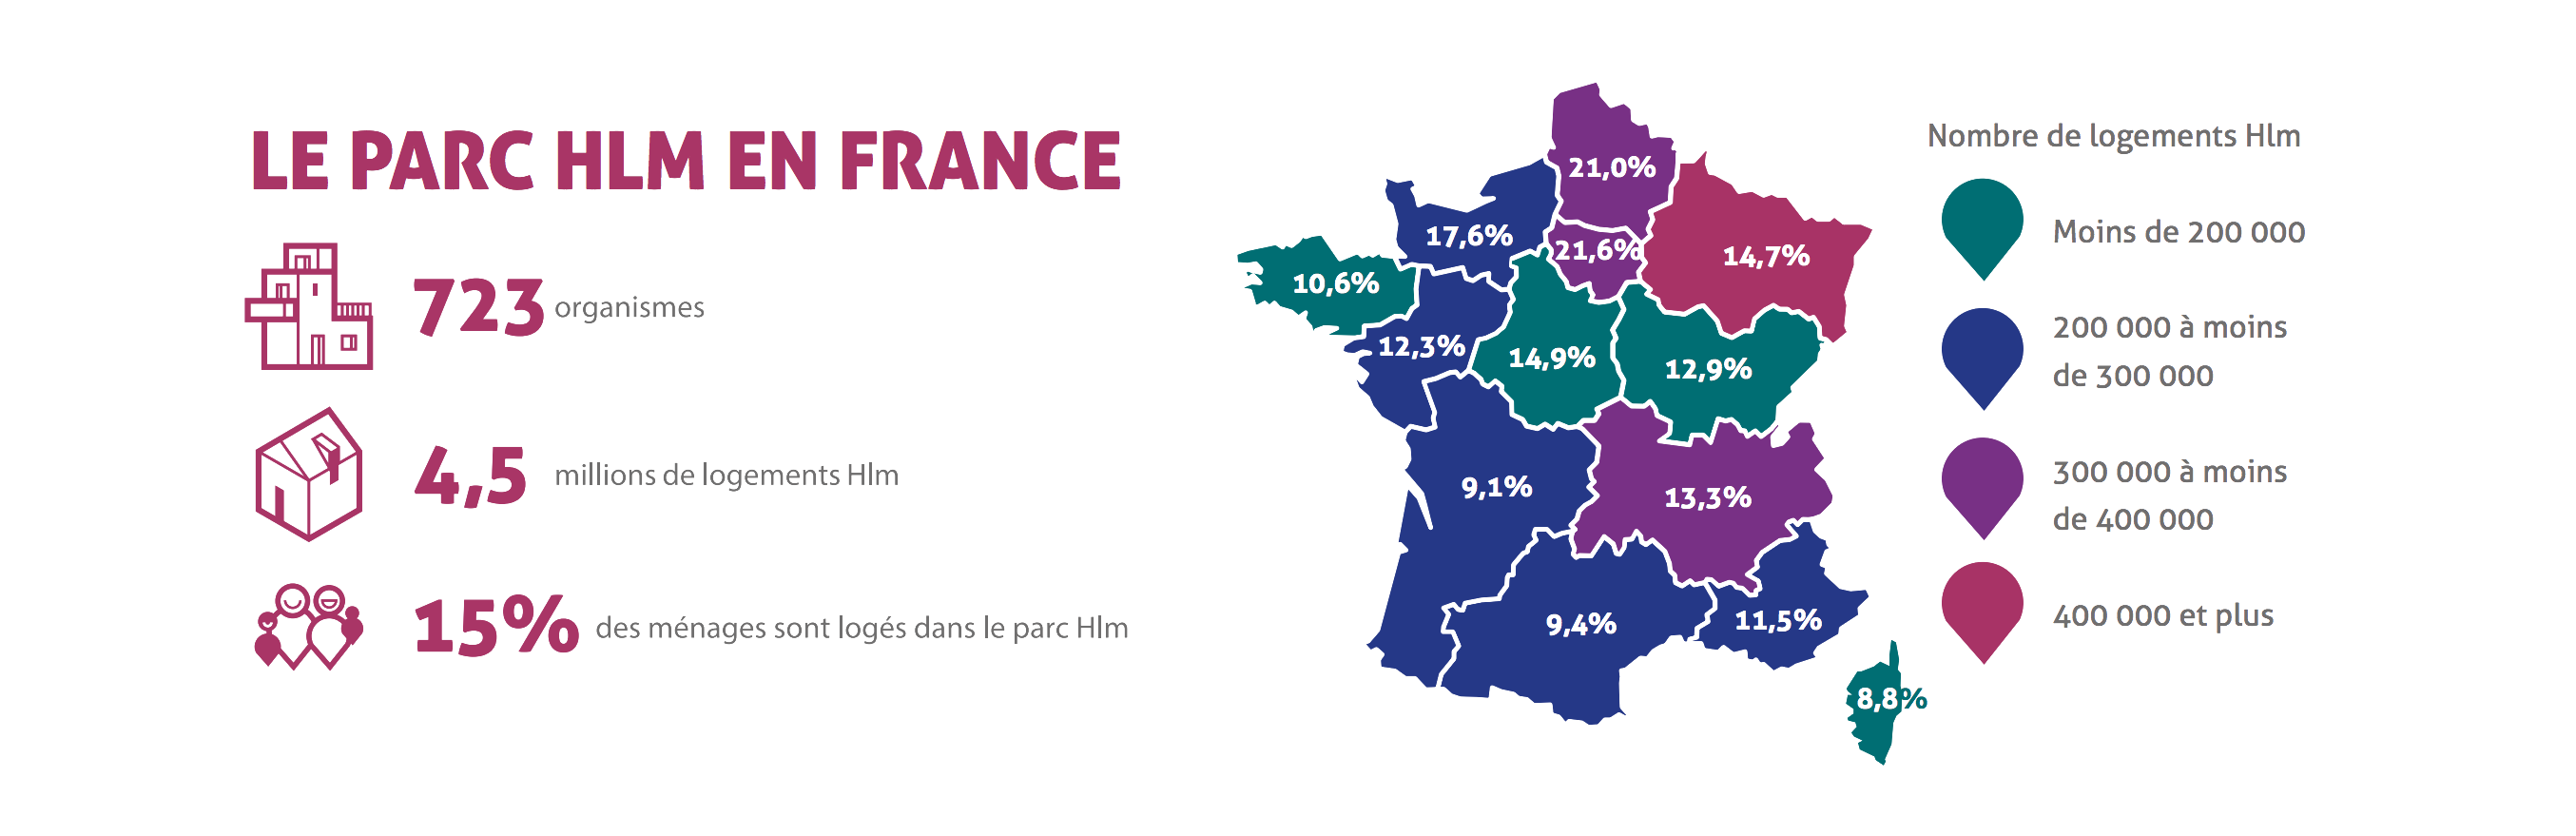 Carte d'implantation des HLM en France